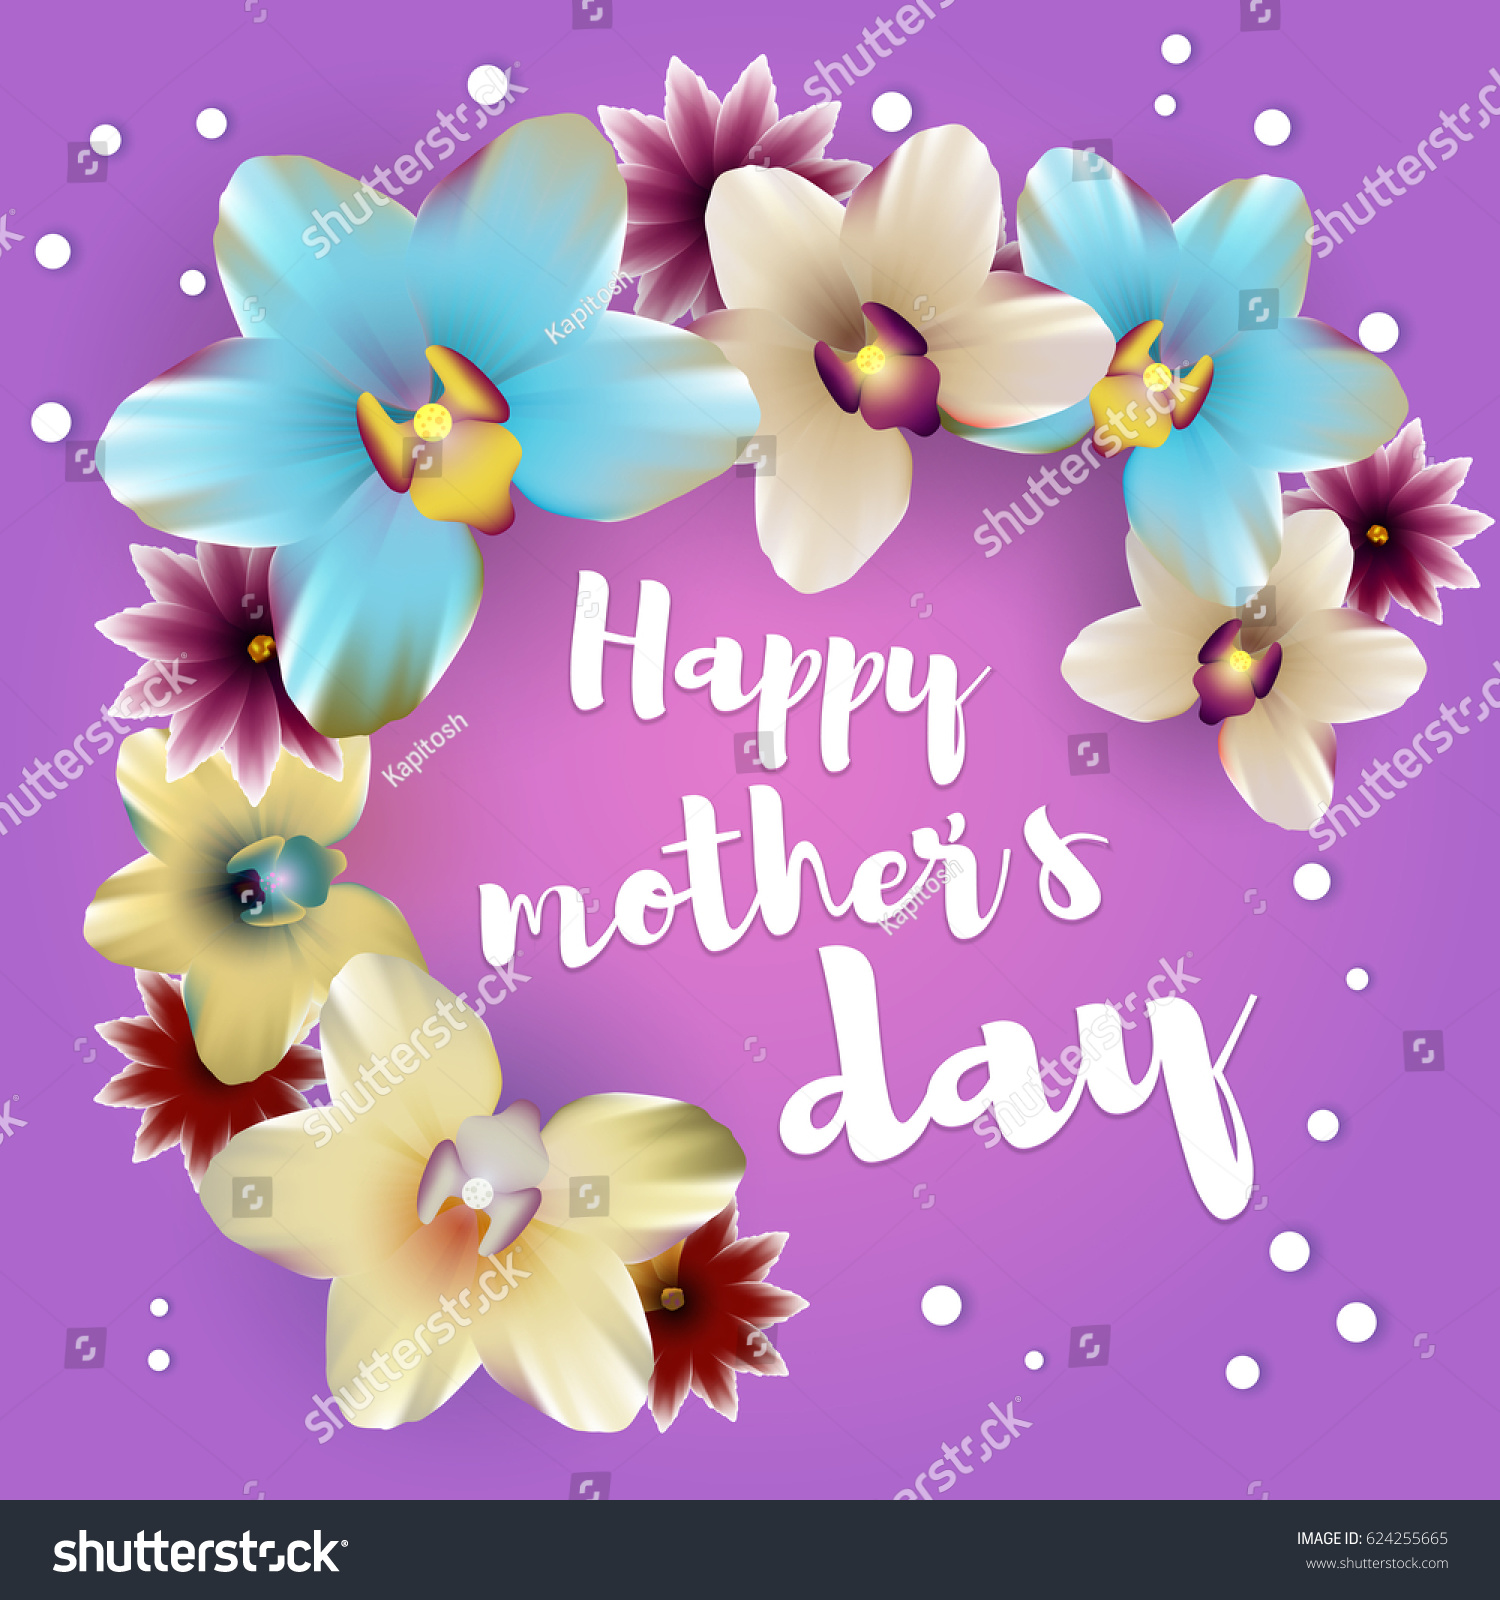 Greetings Happy Mothers Day Spring Banner Stock Vector 624255665